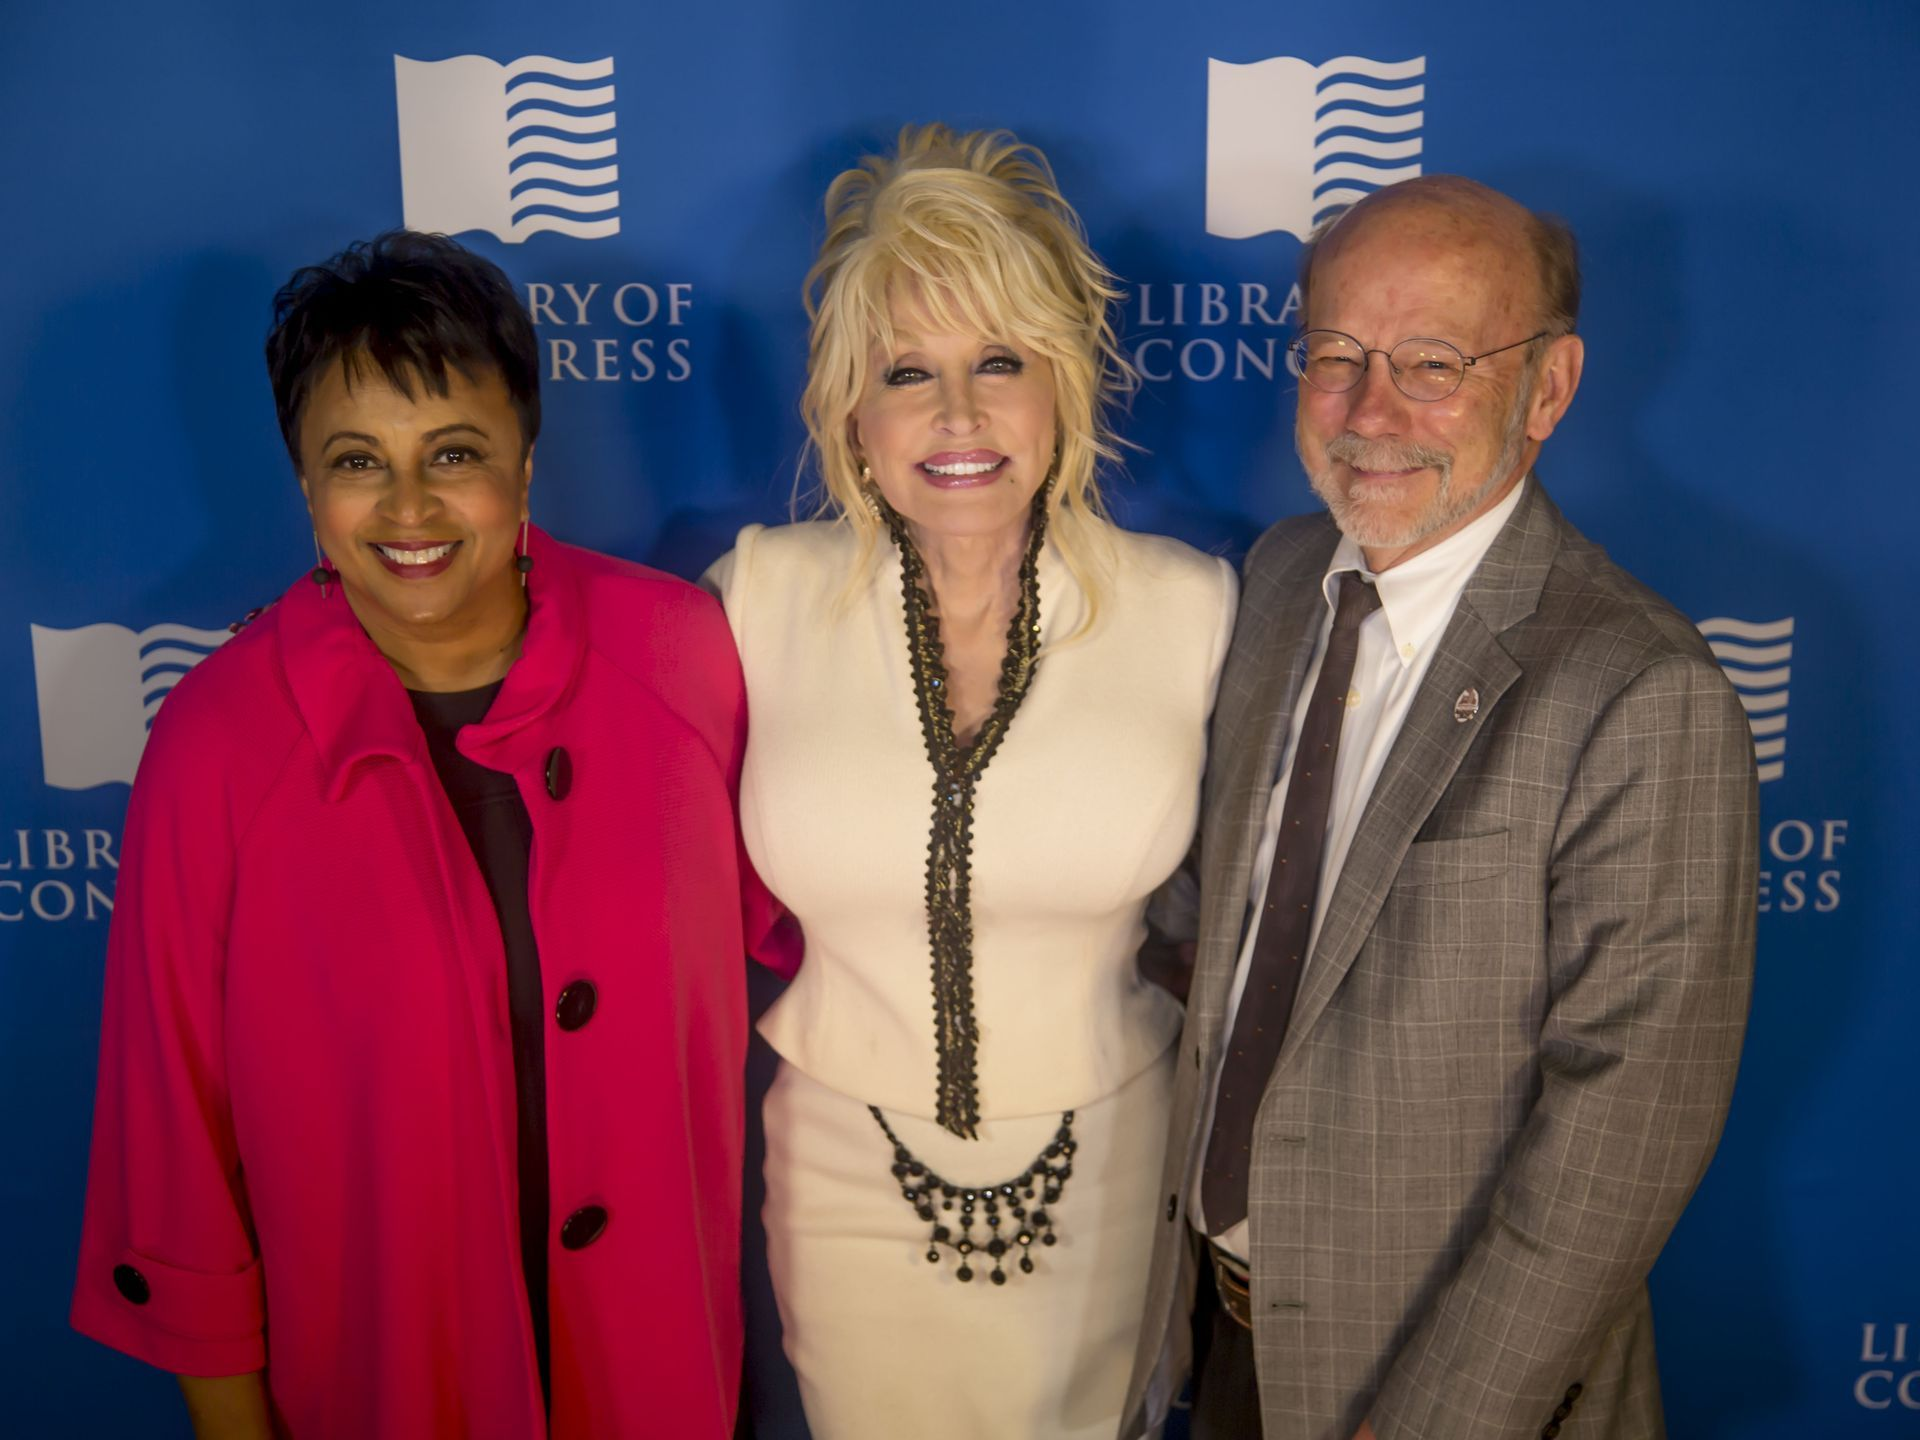 Carla Hayden (Library of Congress), Dolly Parton, and David Dotson (Director of the Dollywood Foundation)